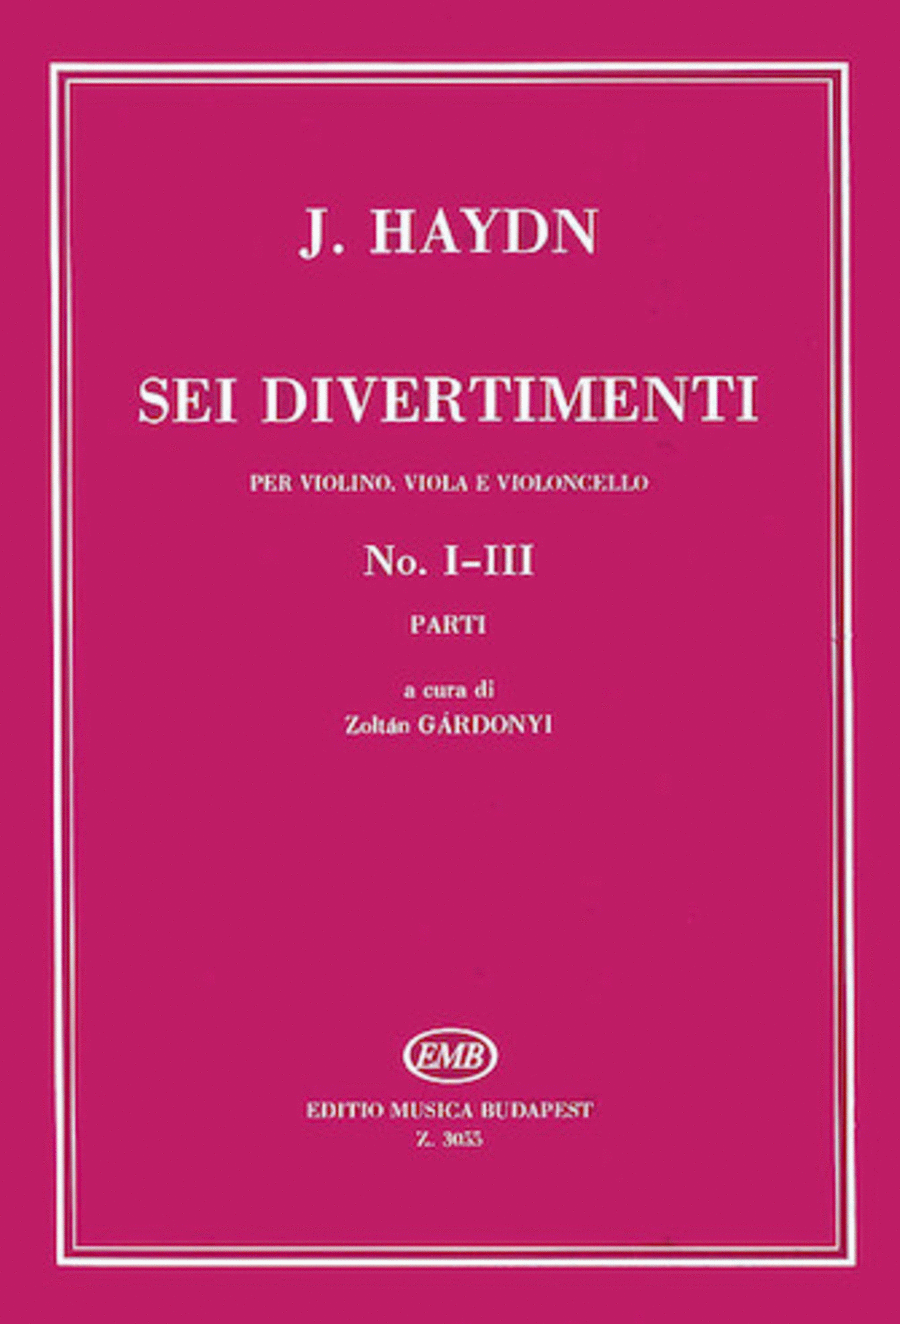 Six Divertimenti for Violin, Viola, and Cello, Nos. 1-3